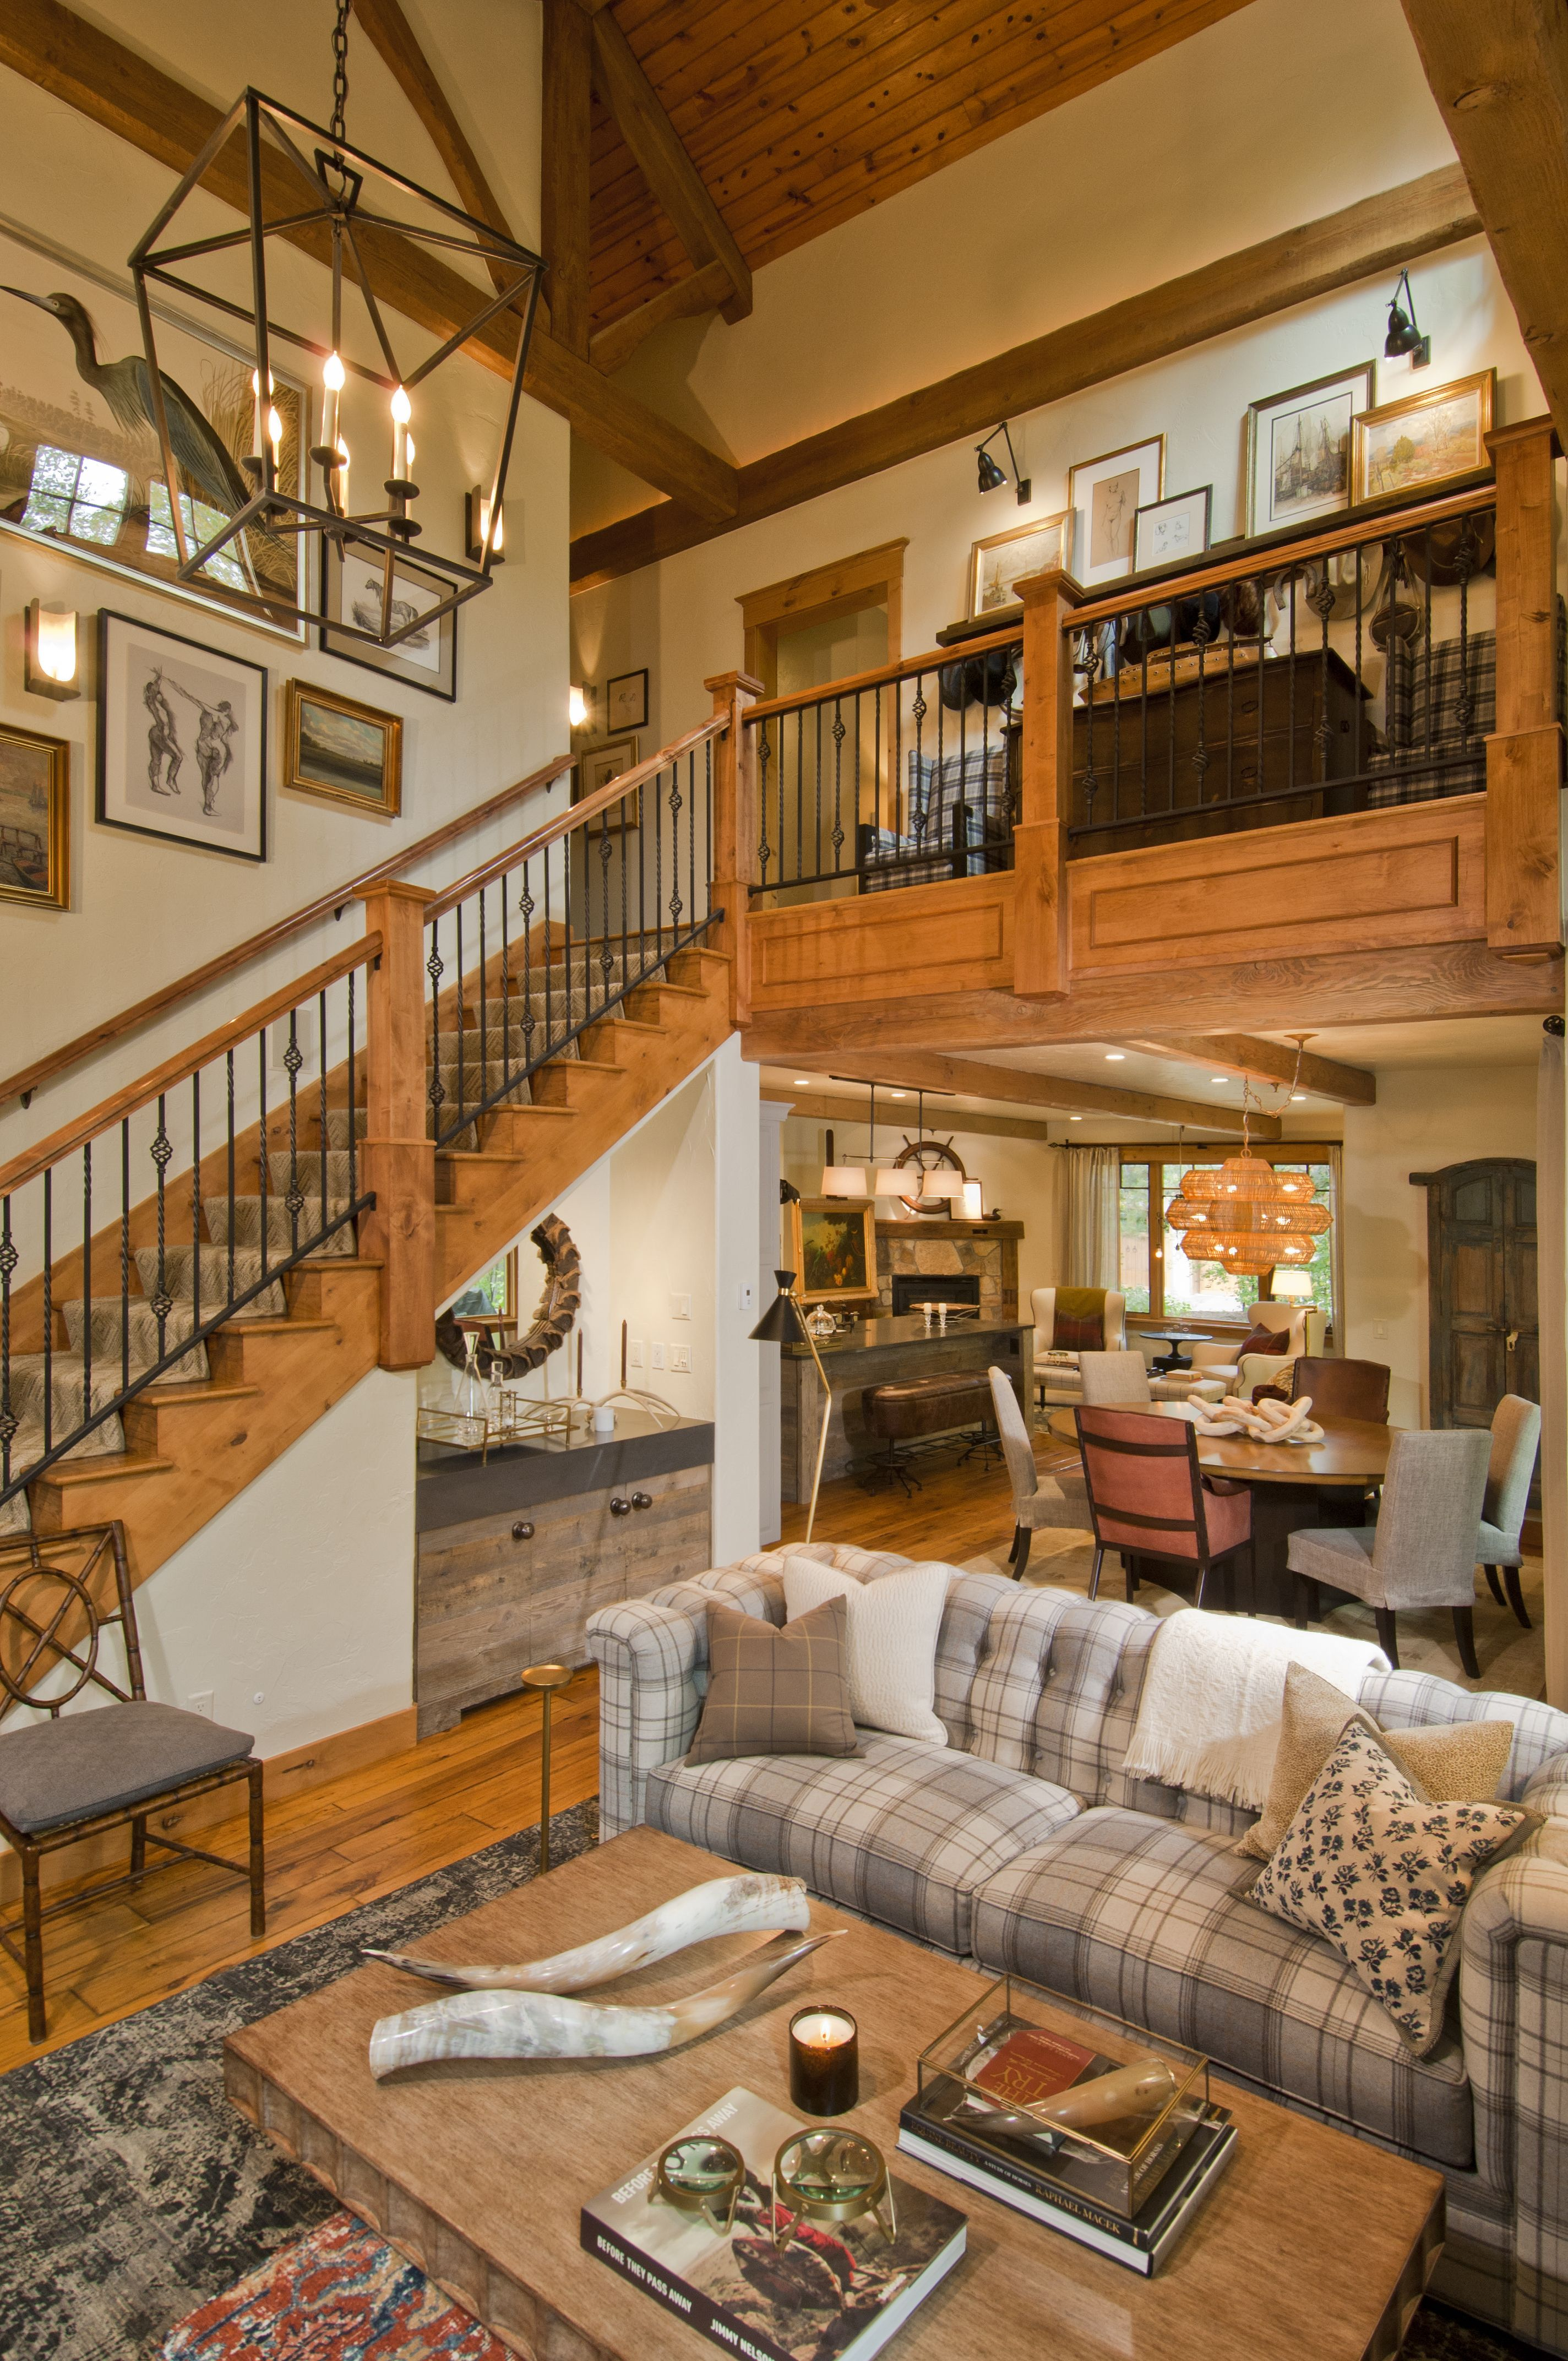 Traditional Living Room Interior Design: Living Room, Great Room, Mountain Home, Rustic, Eclectic